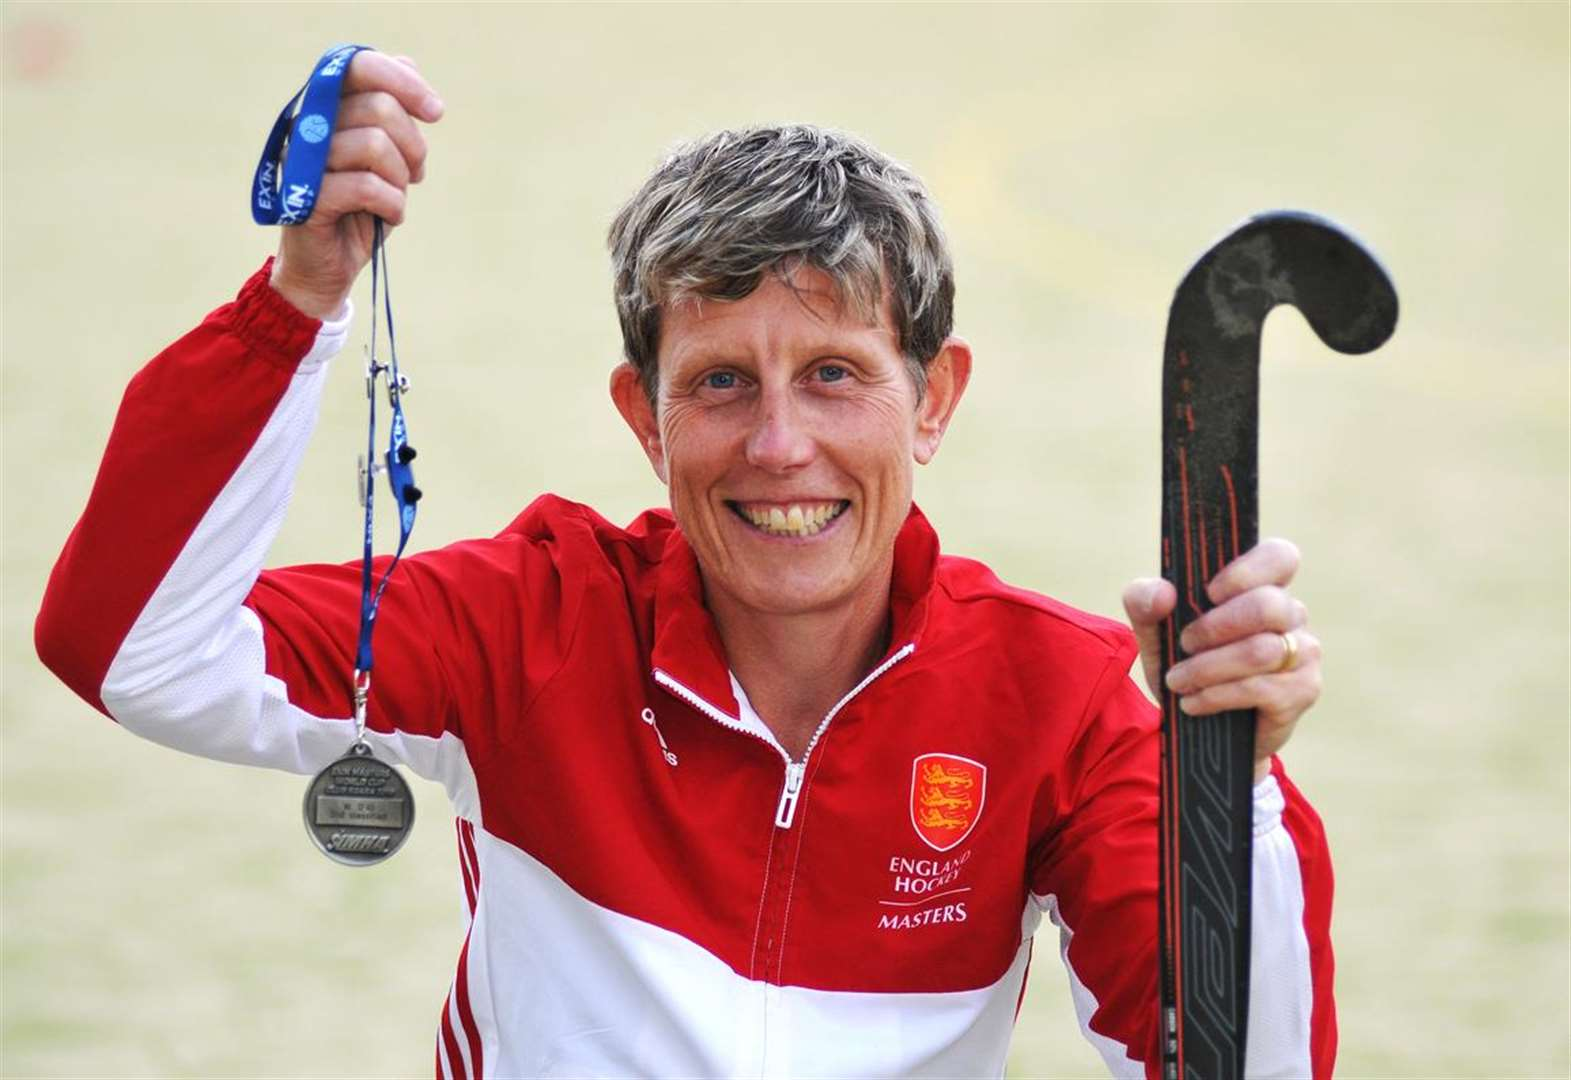 HOCKEY: Lorraine celebrates with silver medal in World Cup